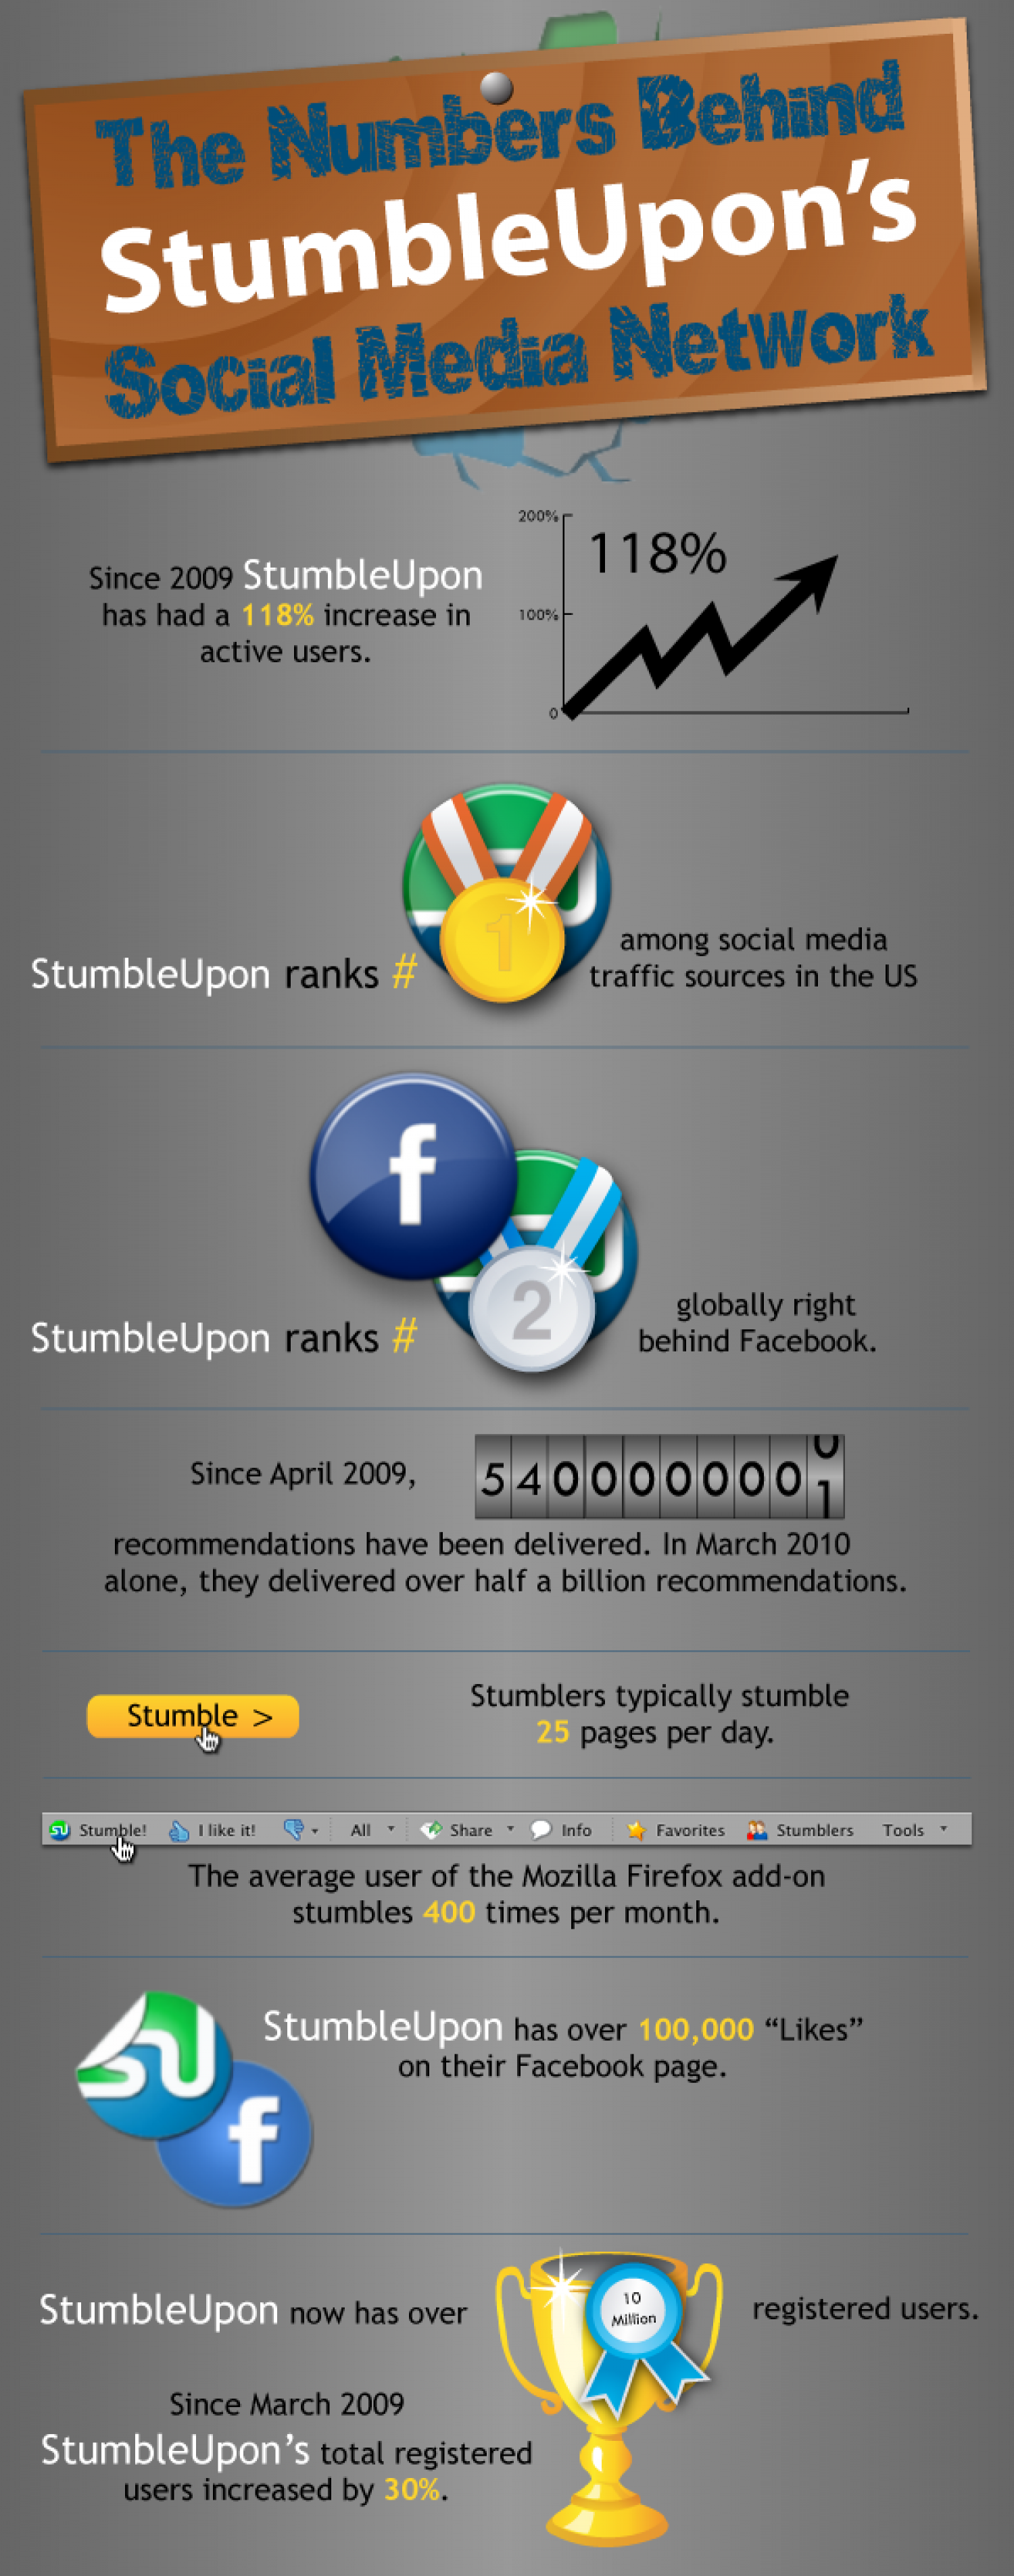 The Numbers Behind StumbleUpon's Social Media Network Infographic